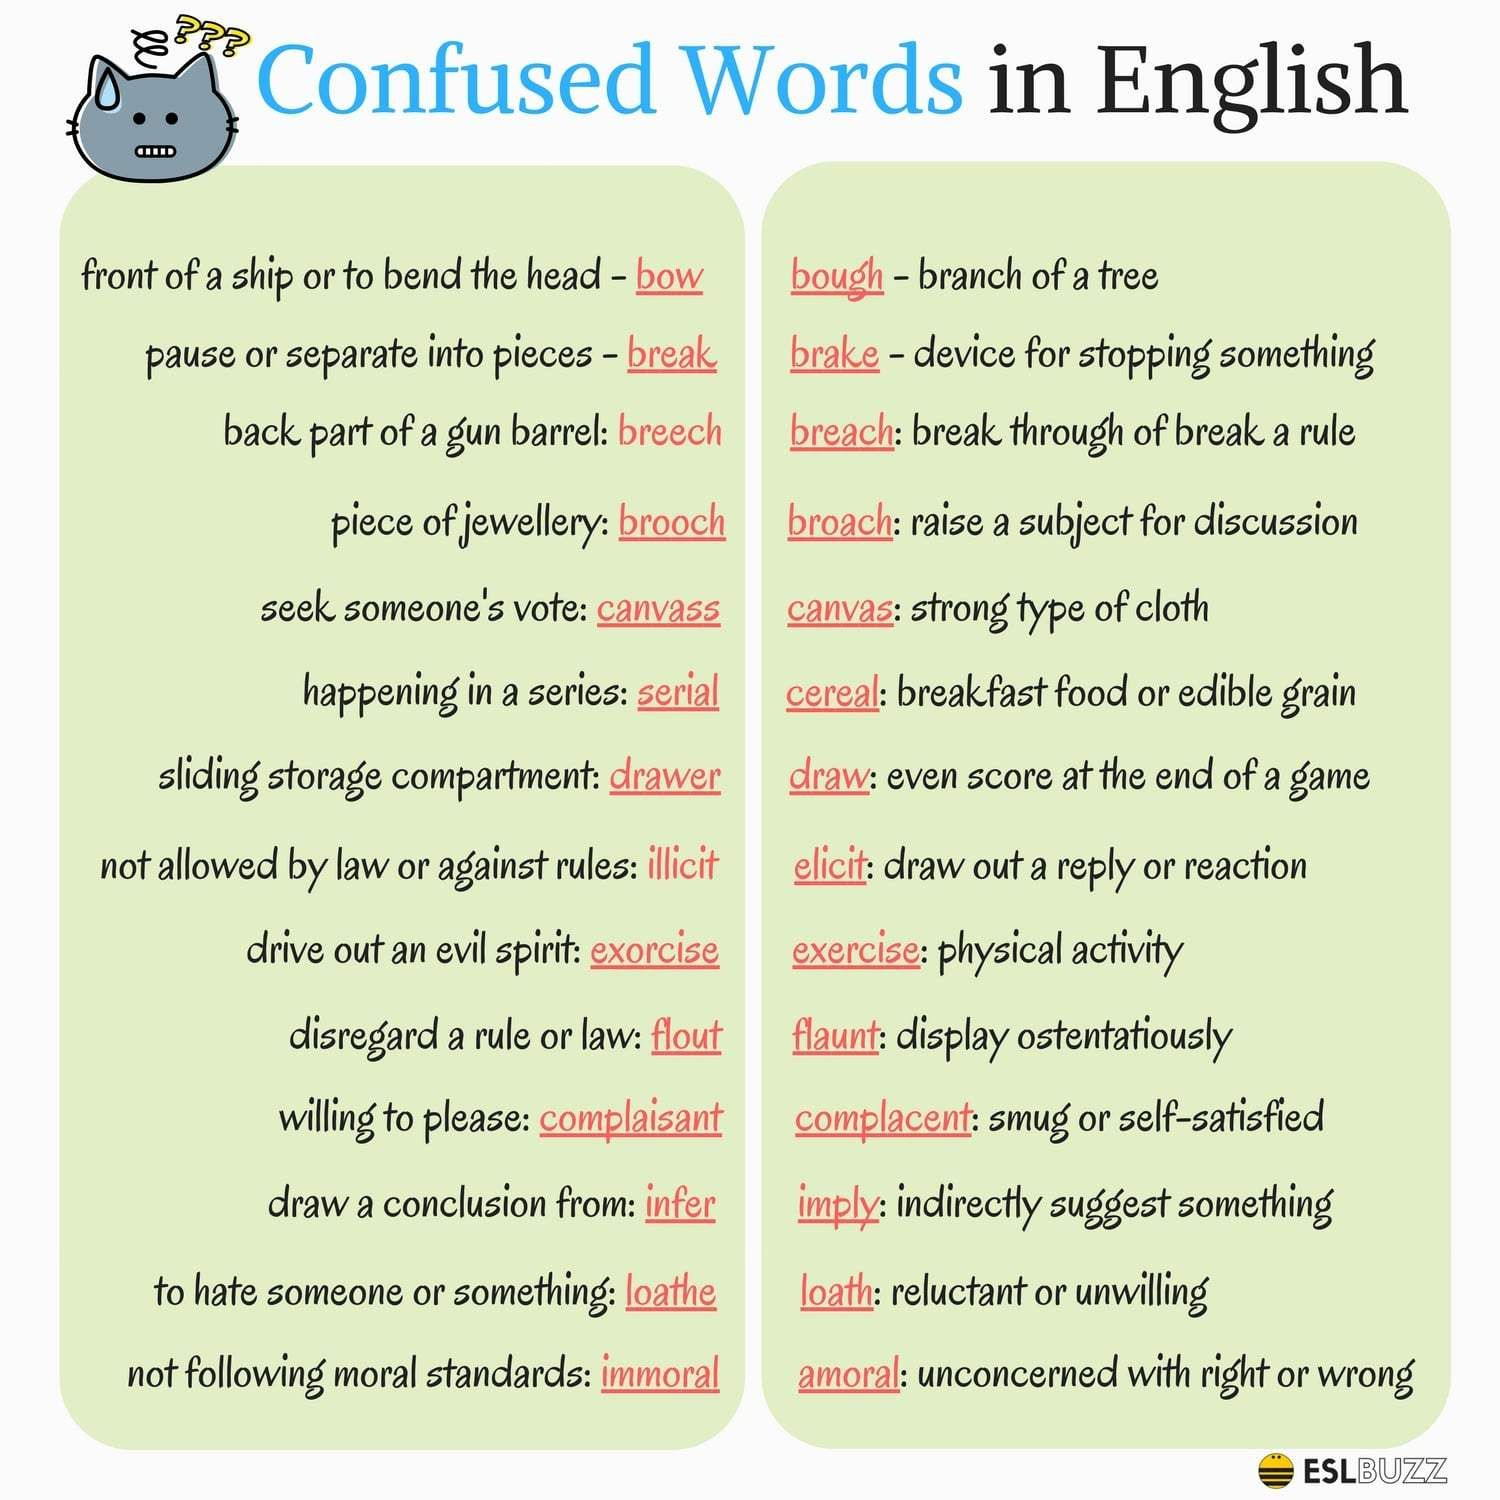 Confused Words in English 1/3 | Lovin Languanges | Pinterest ...